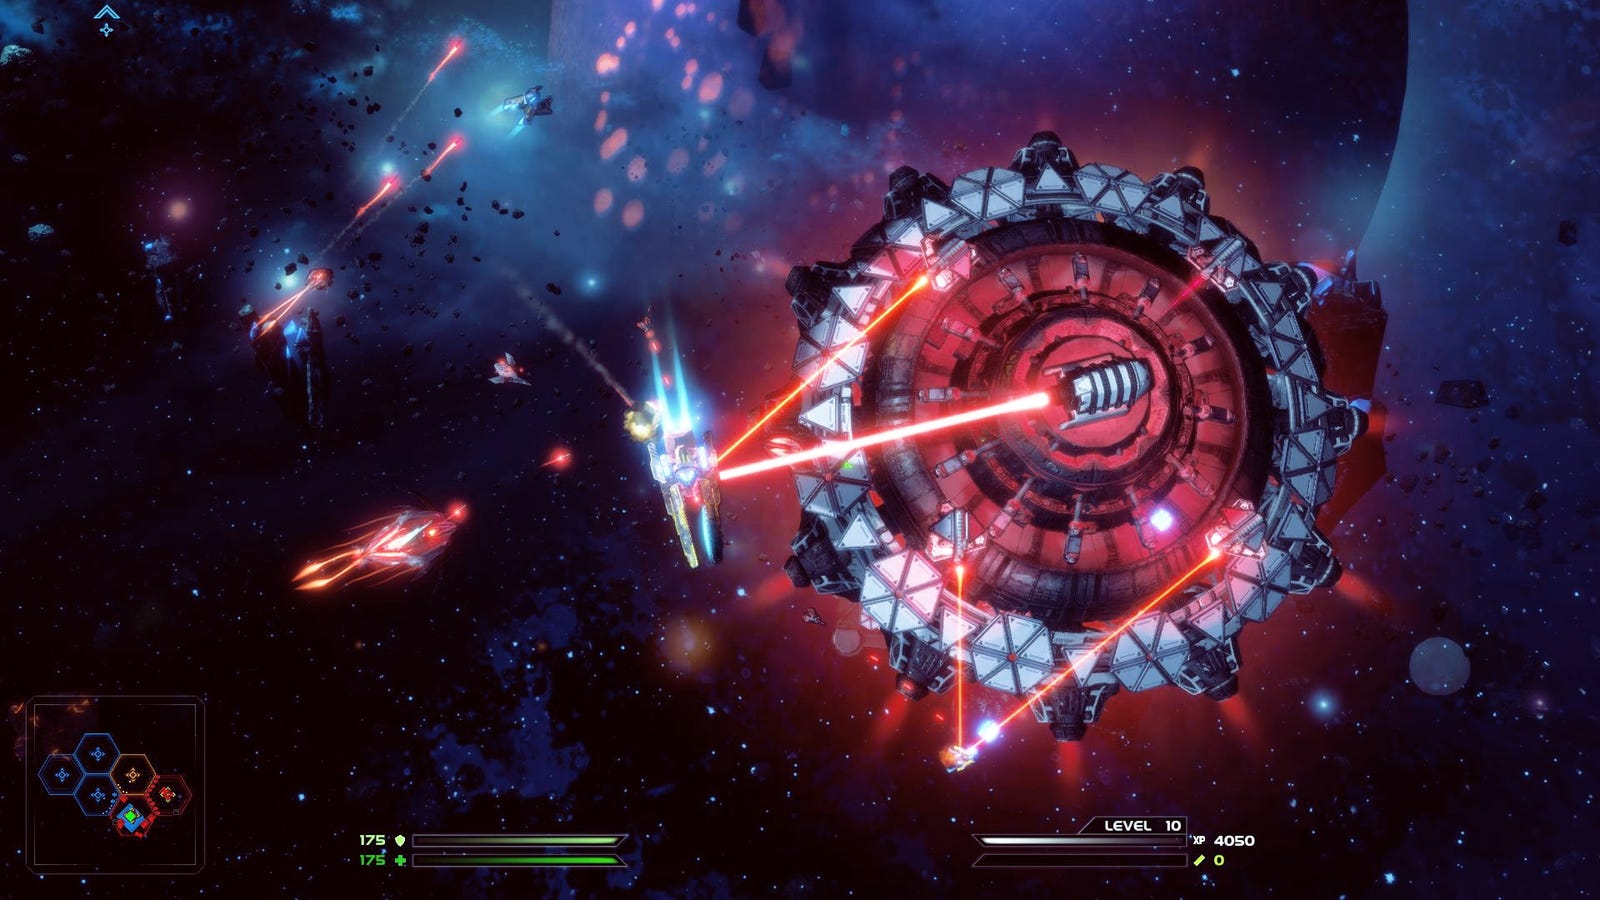 Passion Project' Dead Star Delisted From PSN, Steam As